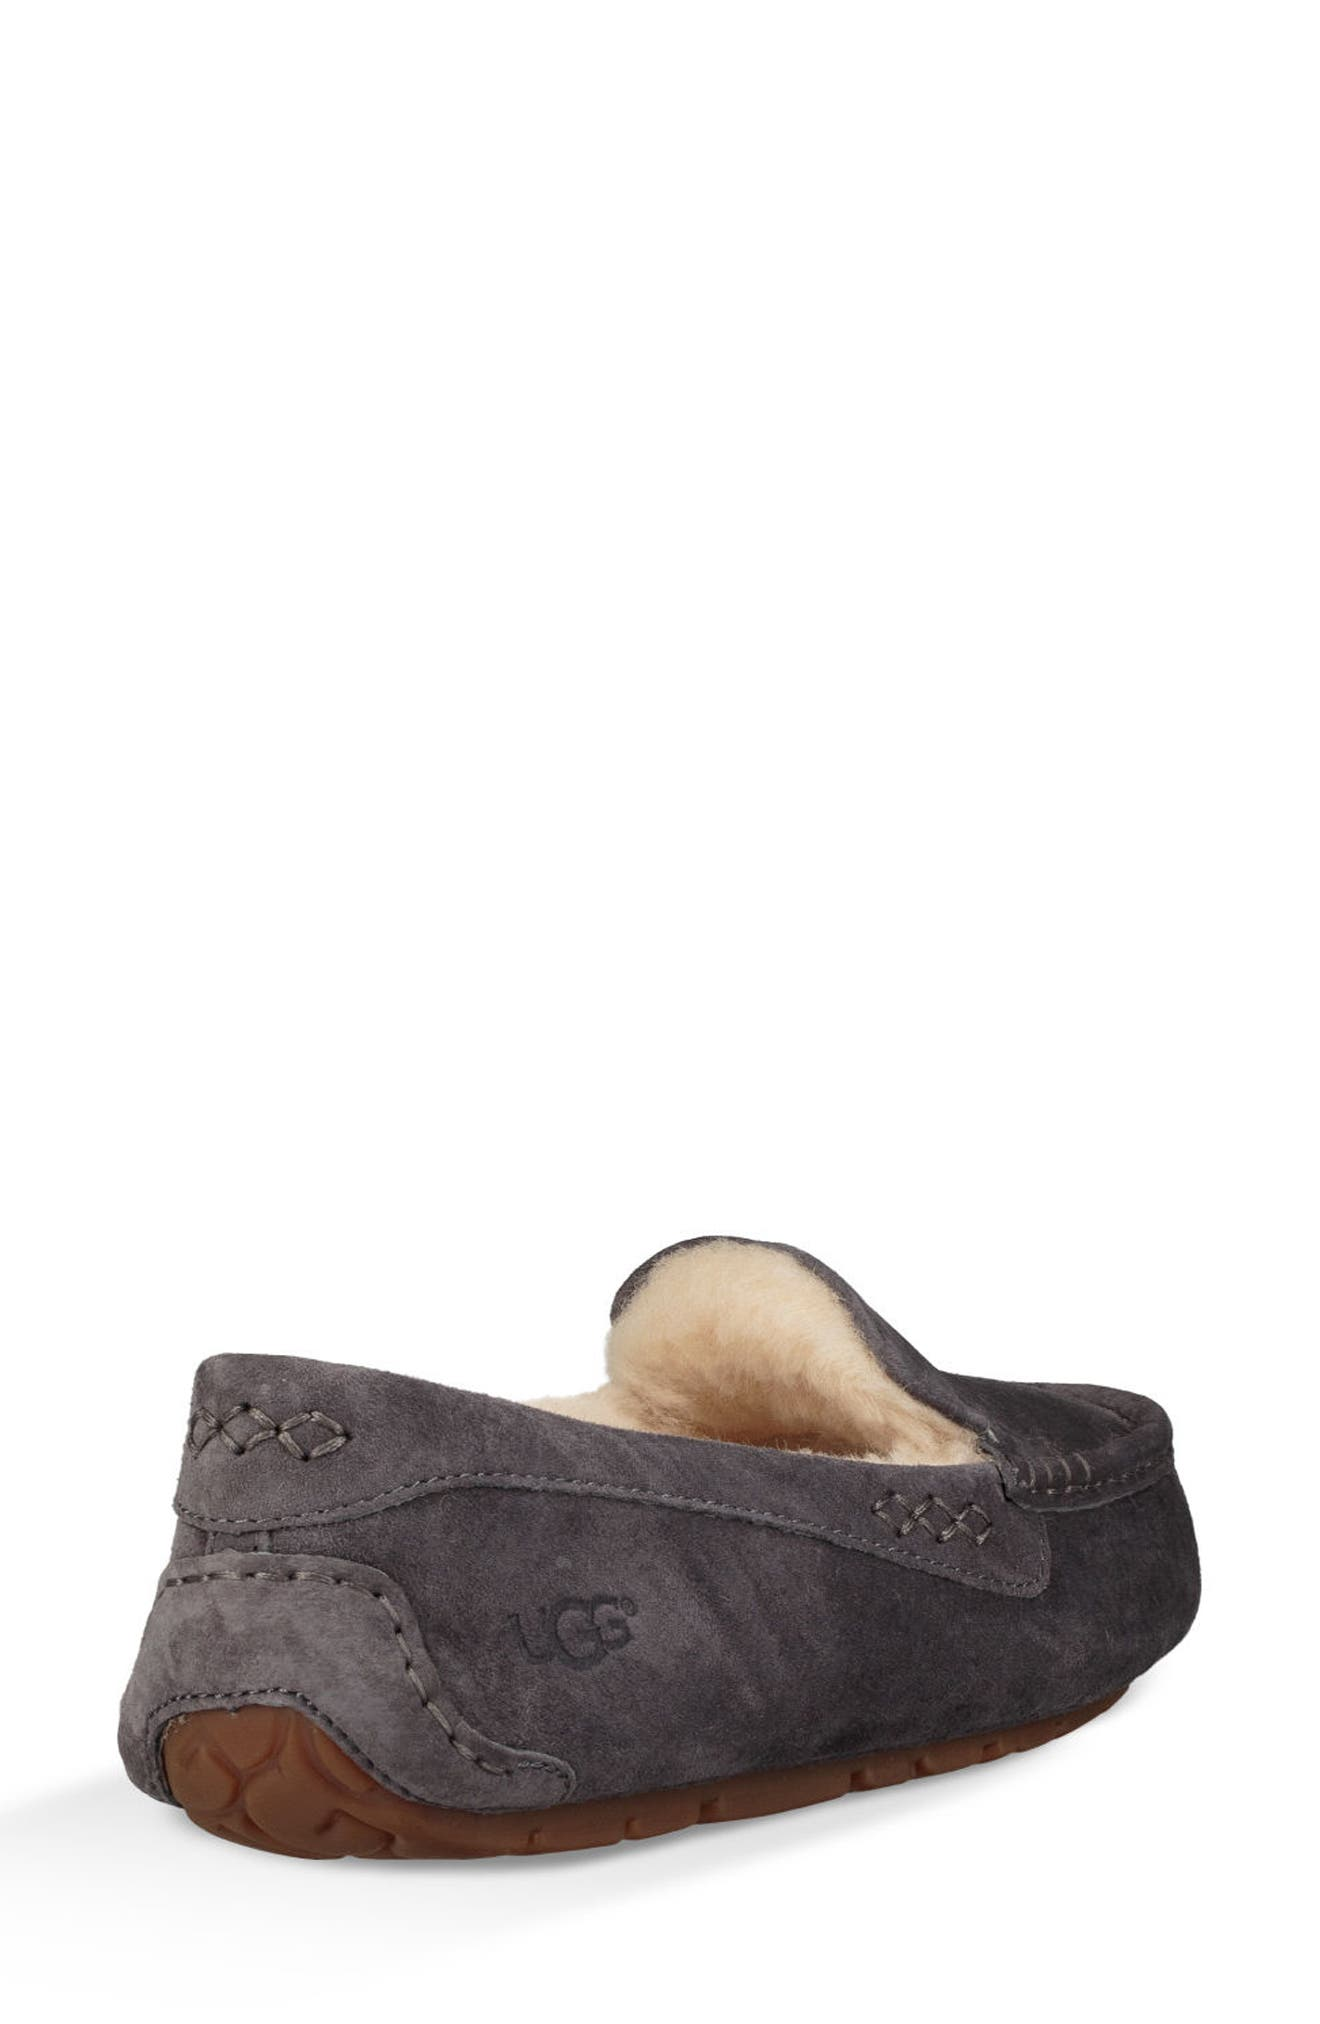 Ansley Water Resistant Slipper,                             Alternate thumbnail 2, color,                             NIGHTFALL LEATHER